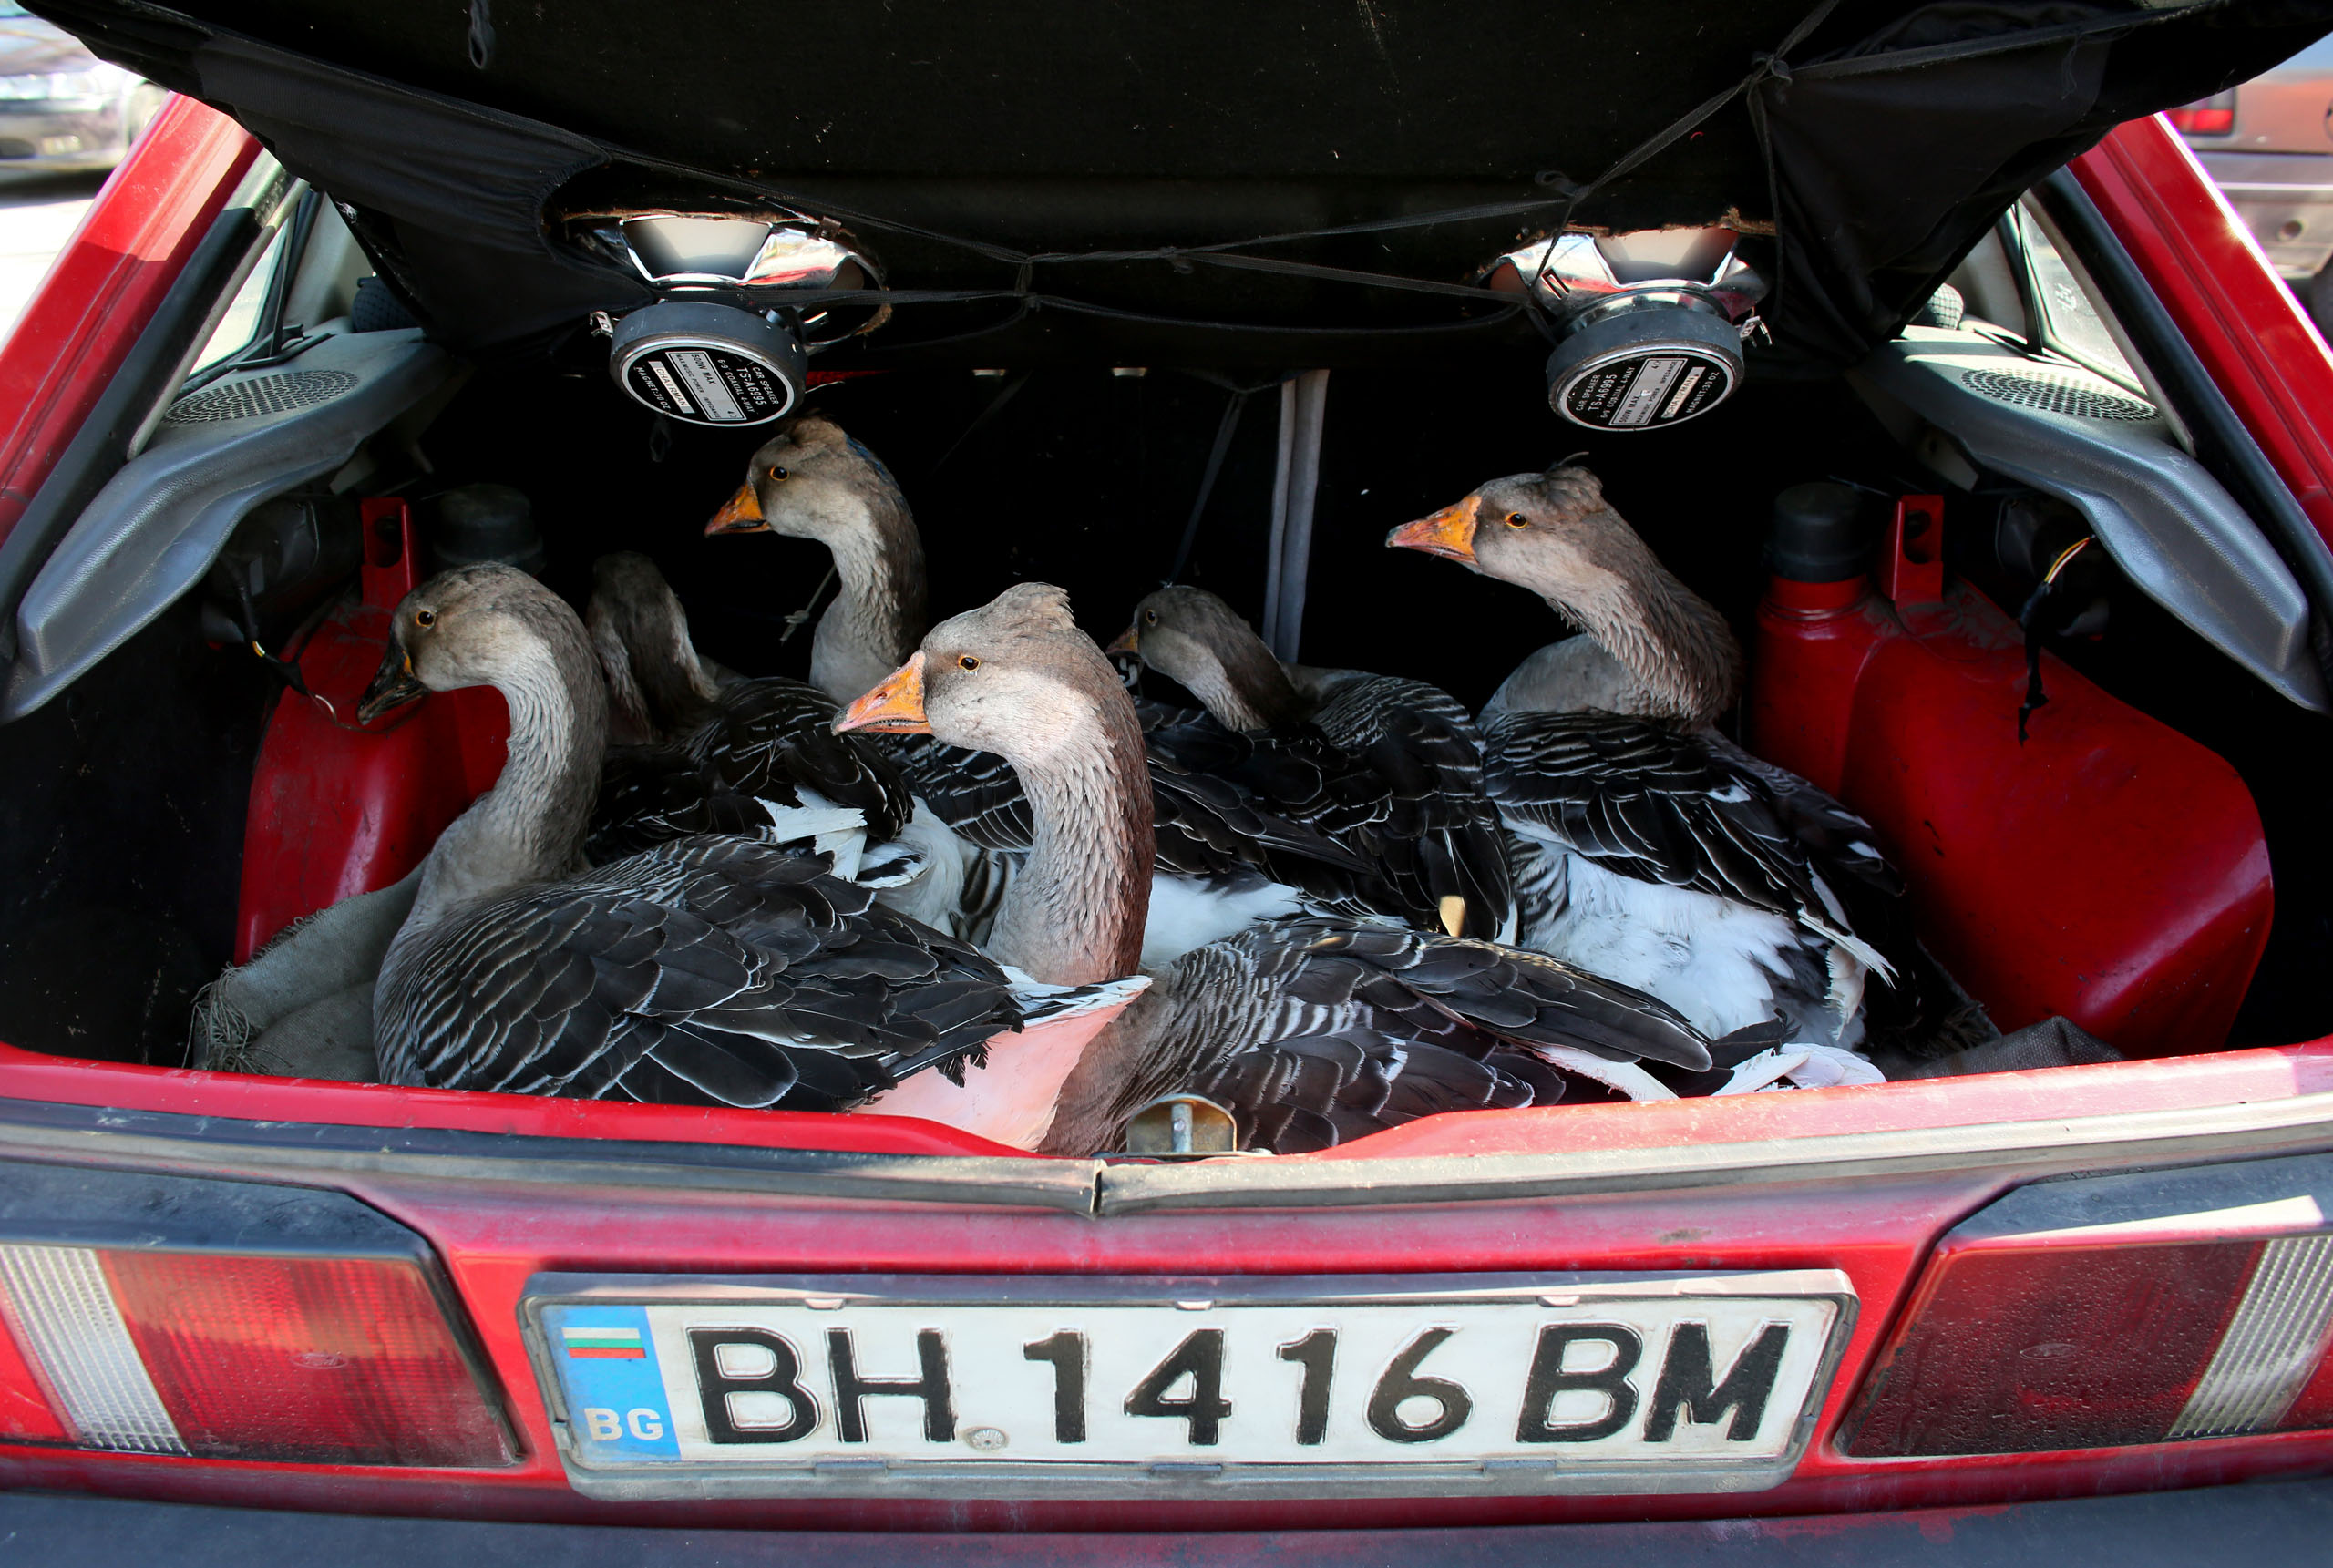 A woman sells geese from the trunk of her car, at an outdoor market in Vidin, Oct.18, 2014.